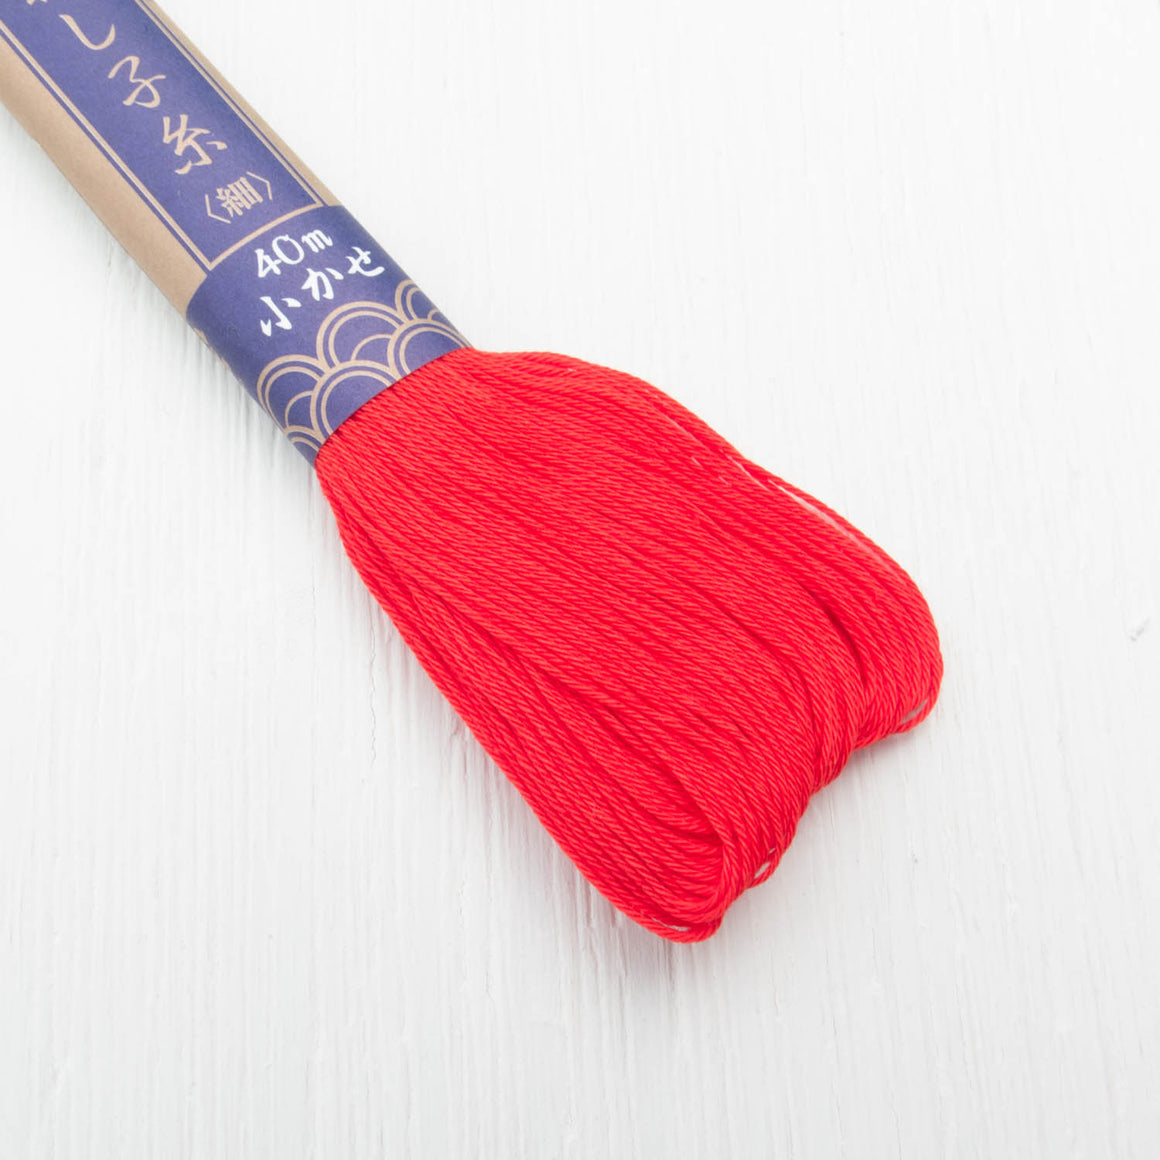 Yokota Sashiko Thread - Bright Red (#16) Sashiko - Snuggly Monkey